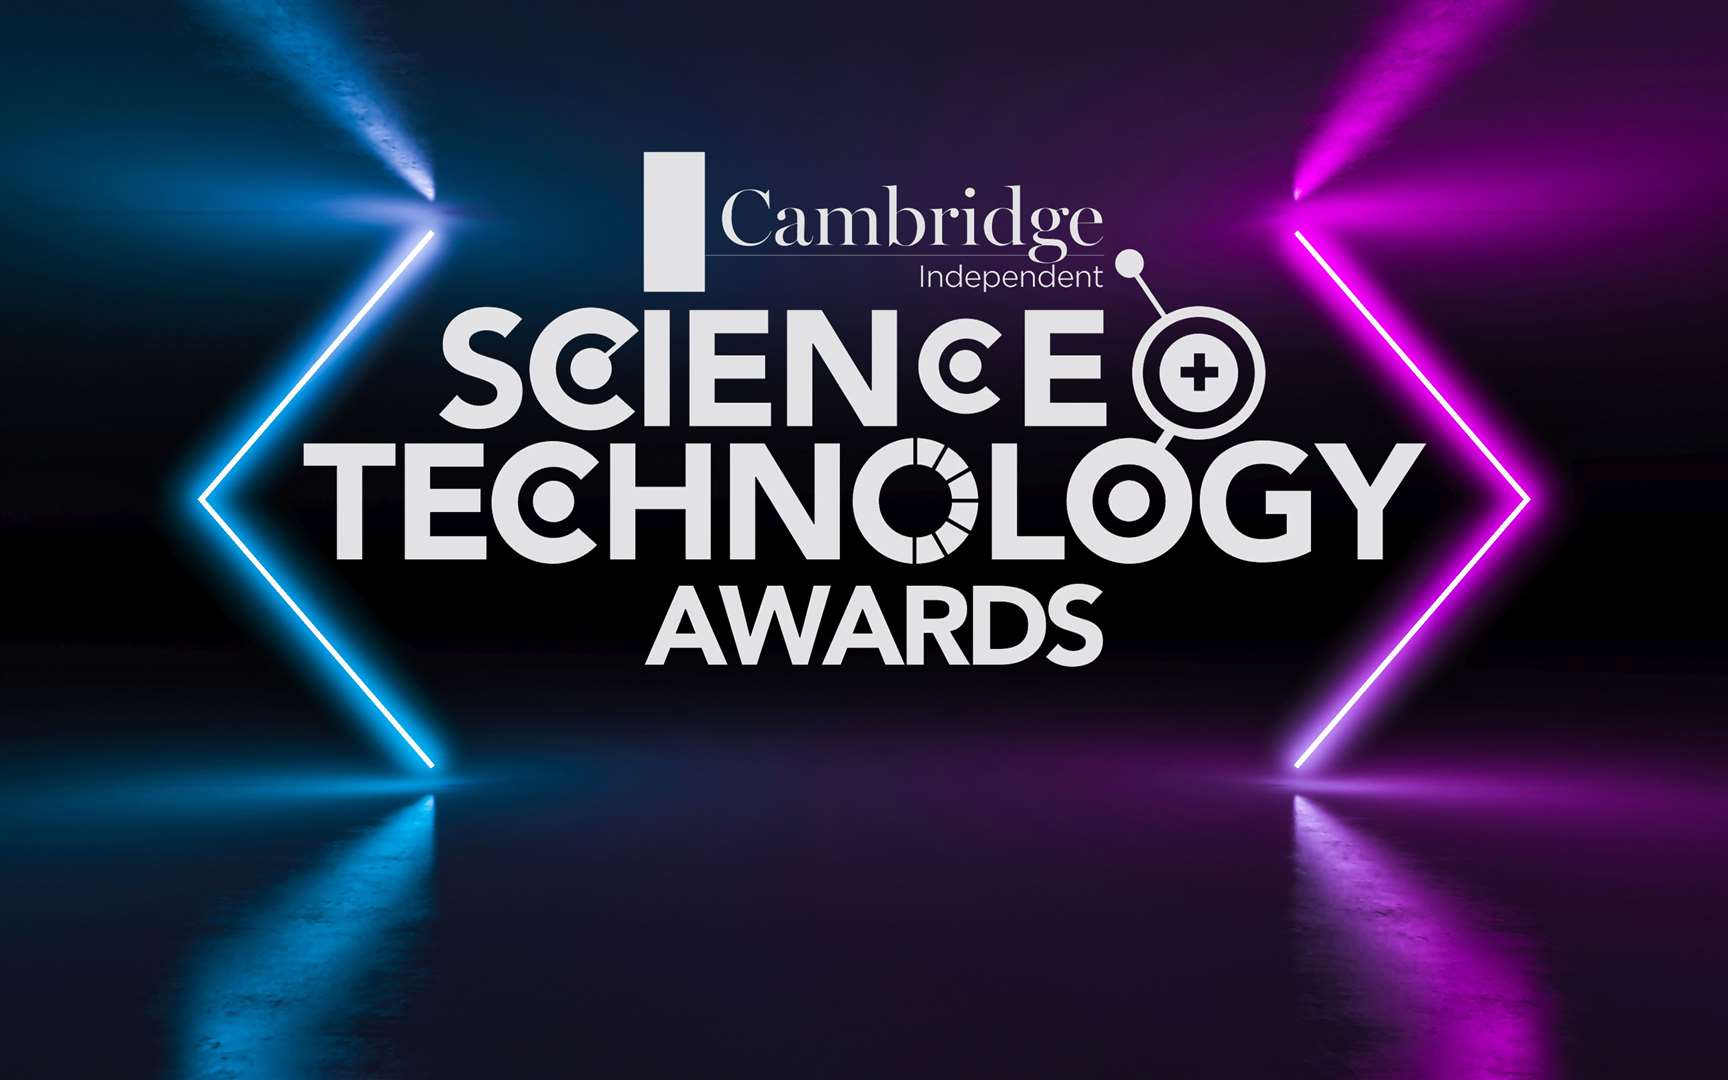 The Cambridge Independent Science and Technology Awards 2020